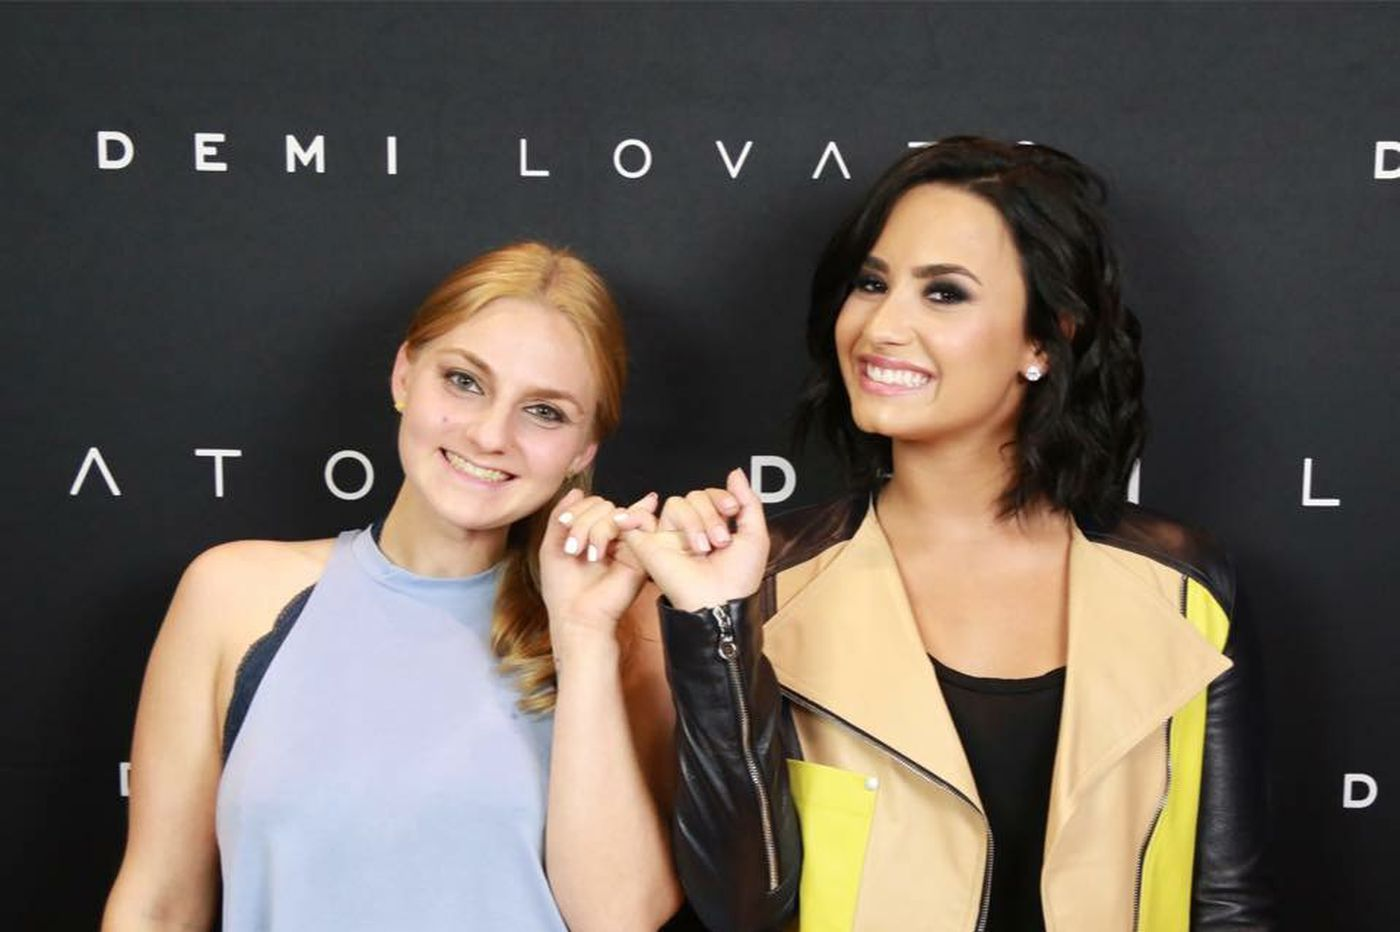 Philly fans rally to support Demi Lovato as a recovery warrior and inspiration after overdose